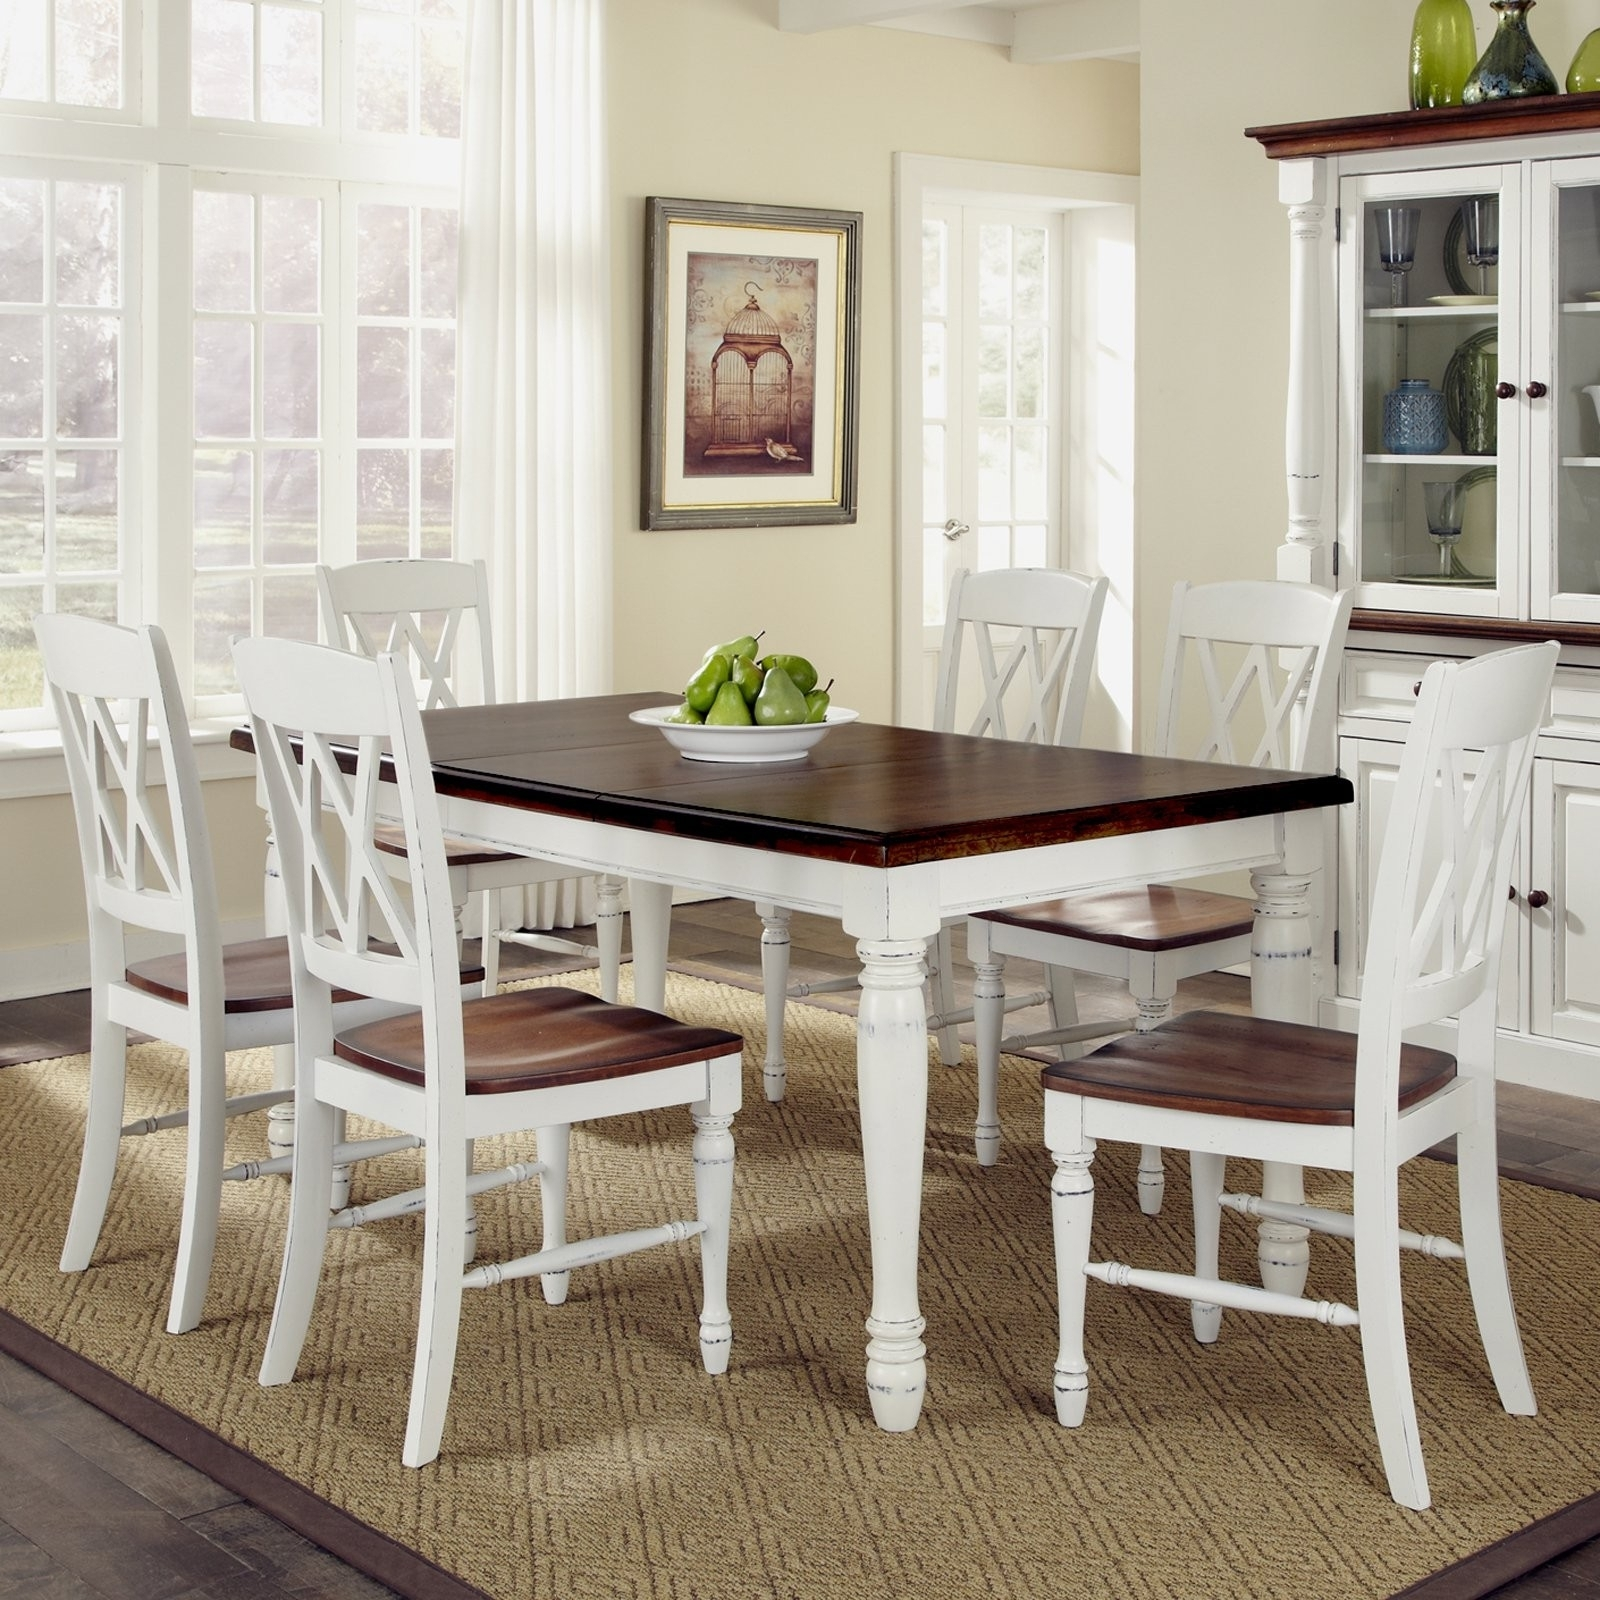 6 Person Round Dining Tables With Well Known 30 Lovely 6 Person Dining Table Size – Welovedandelion (Gallery 22 of 25)